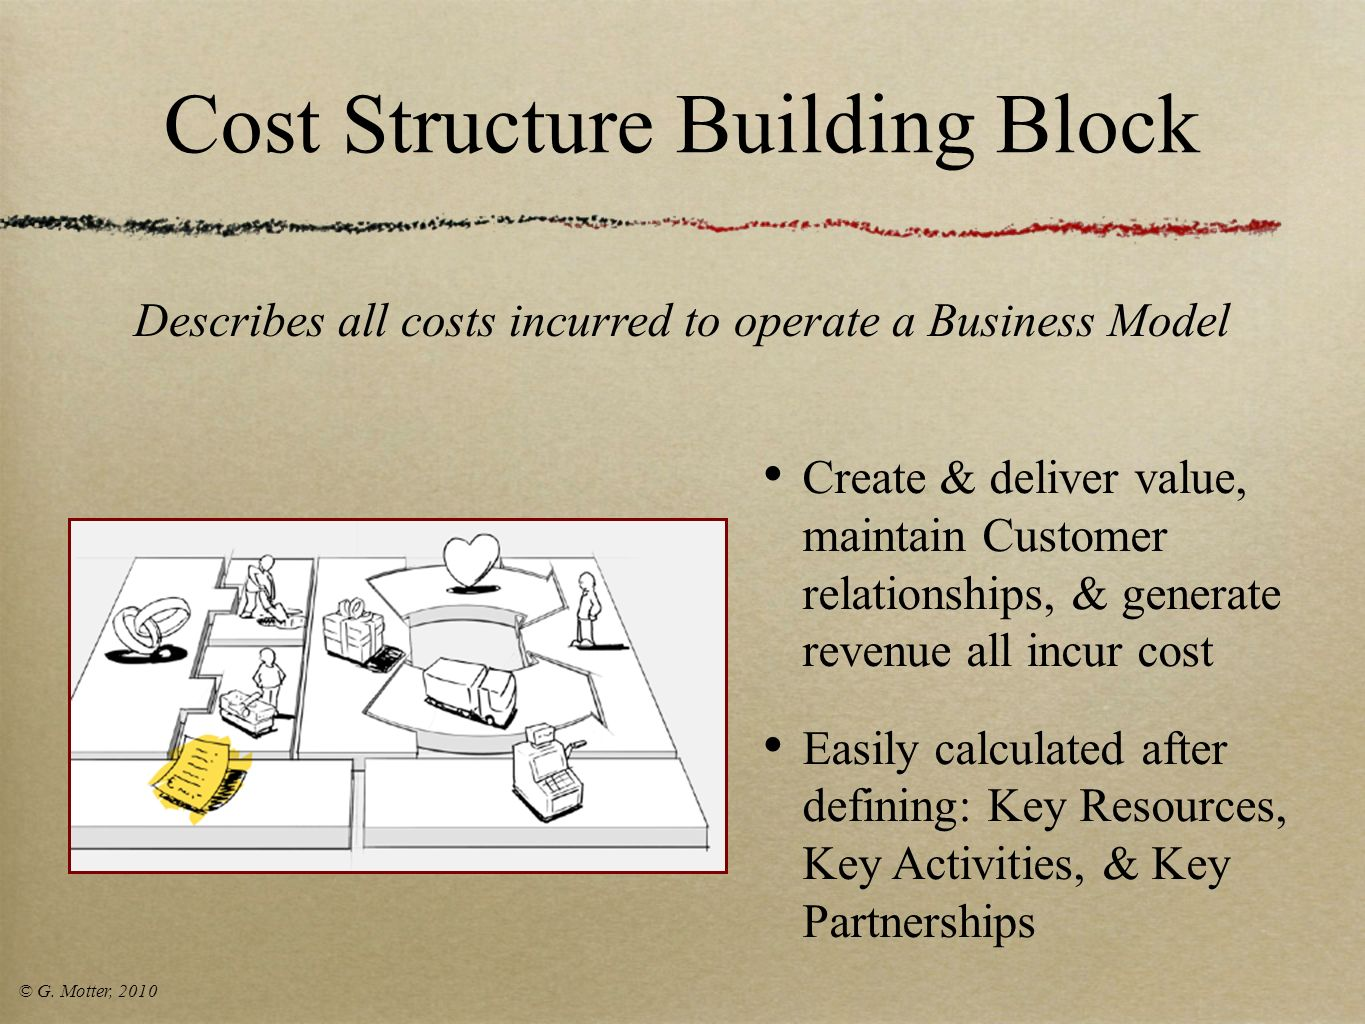 Cost Structure Building Block